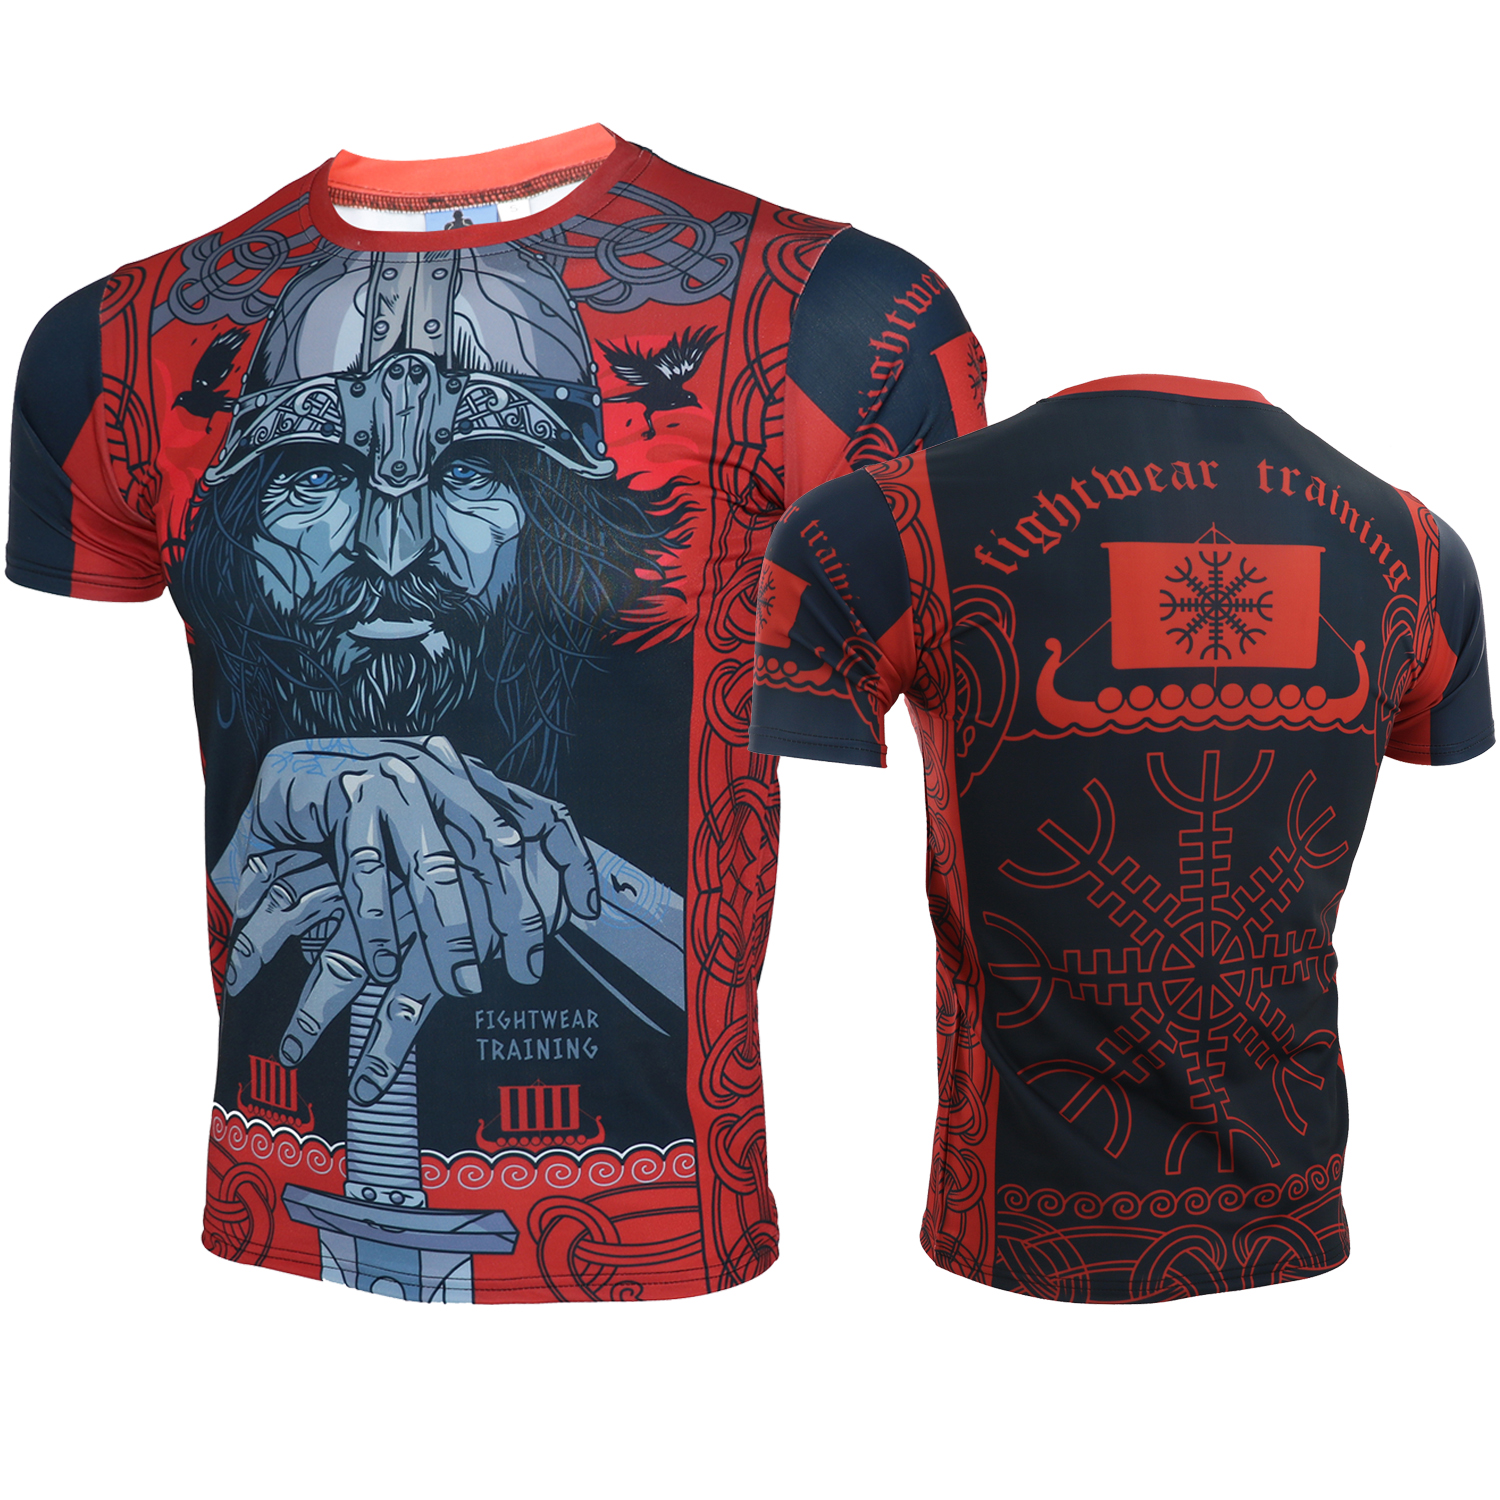 Boxing MMA Muscle T Shirt Gym Tee Shirt Fighting Fighting Martial Arts Fitness Training Muay Thai Shirts Giant Men Homme Boxe